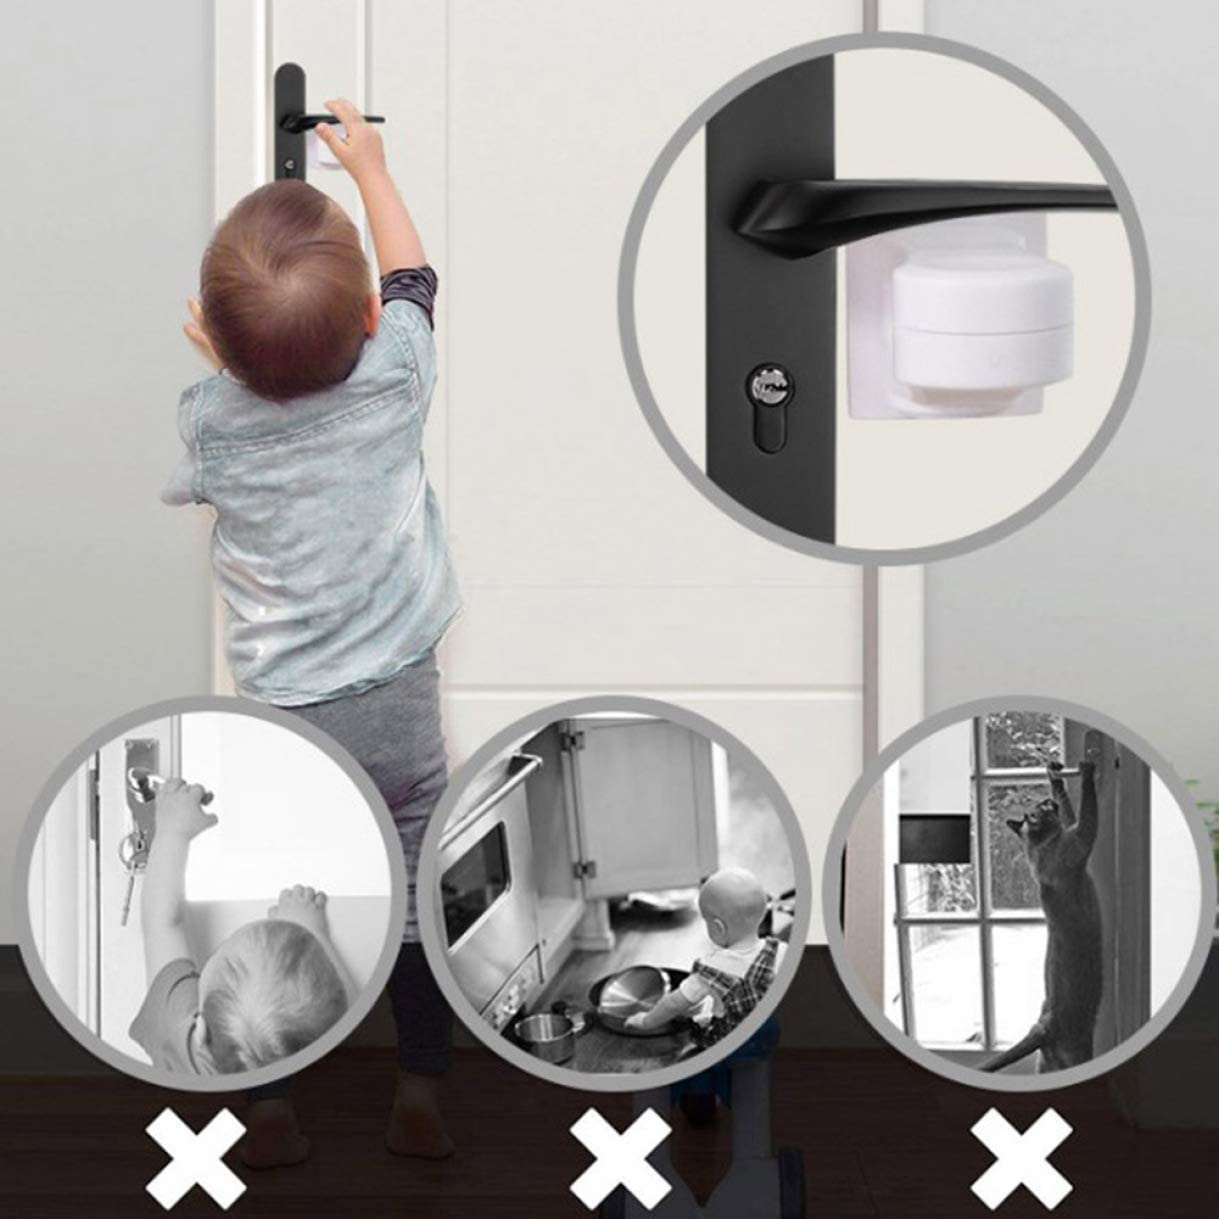 Keppels Notable Door Lever Lock for Home Baby Safety Door Handle Locks Kids Anti-Open Protector None A